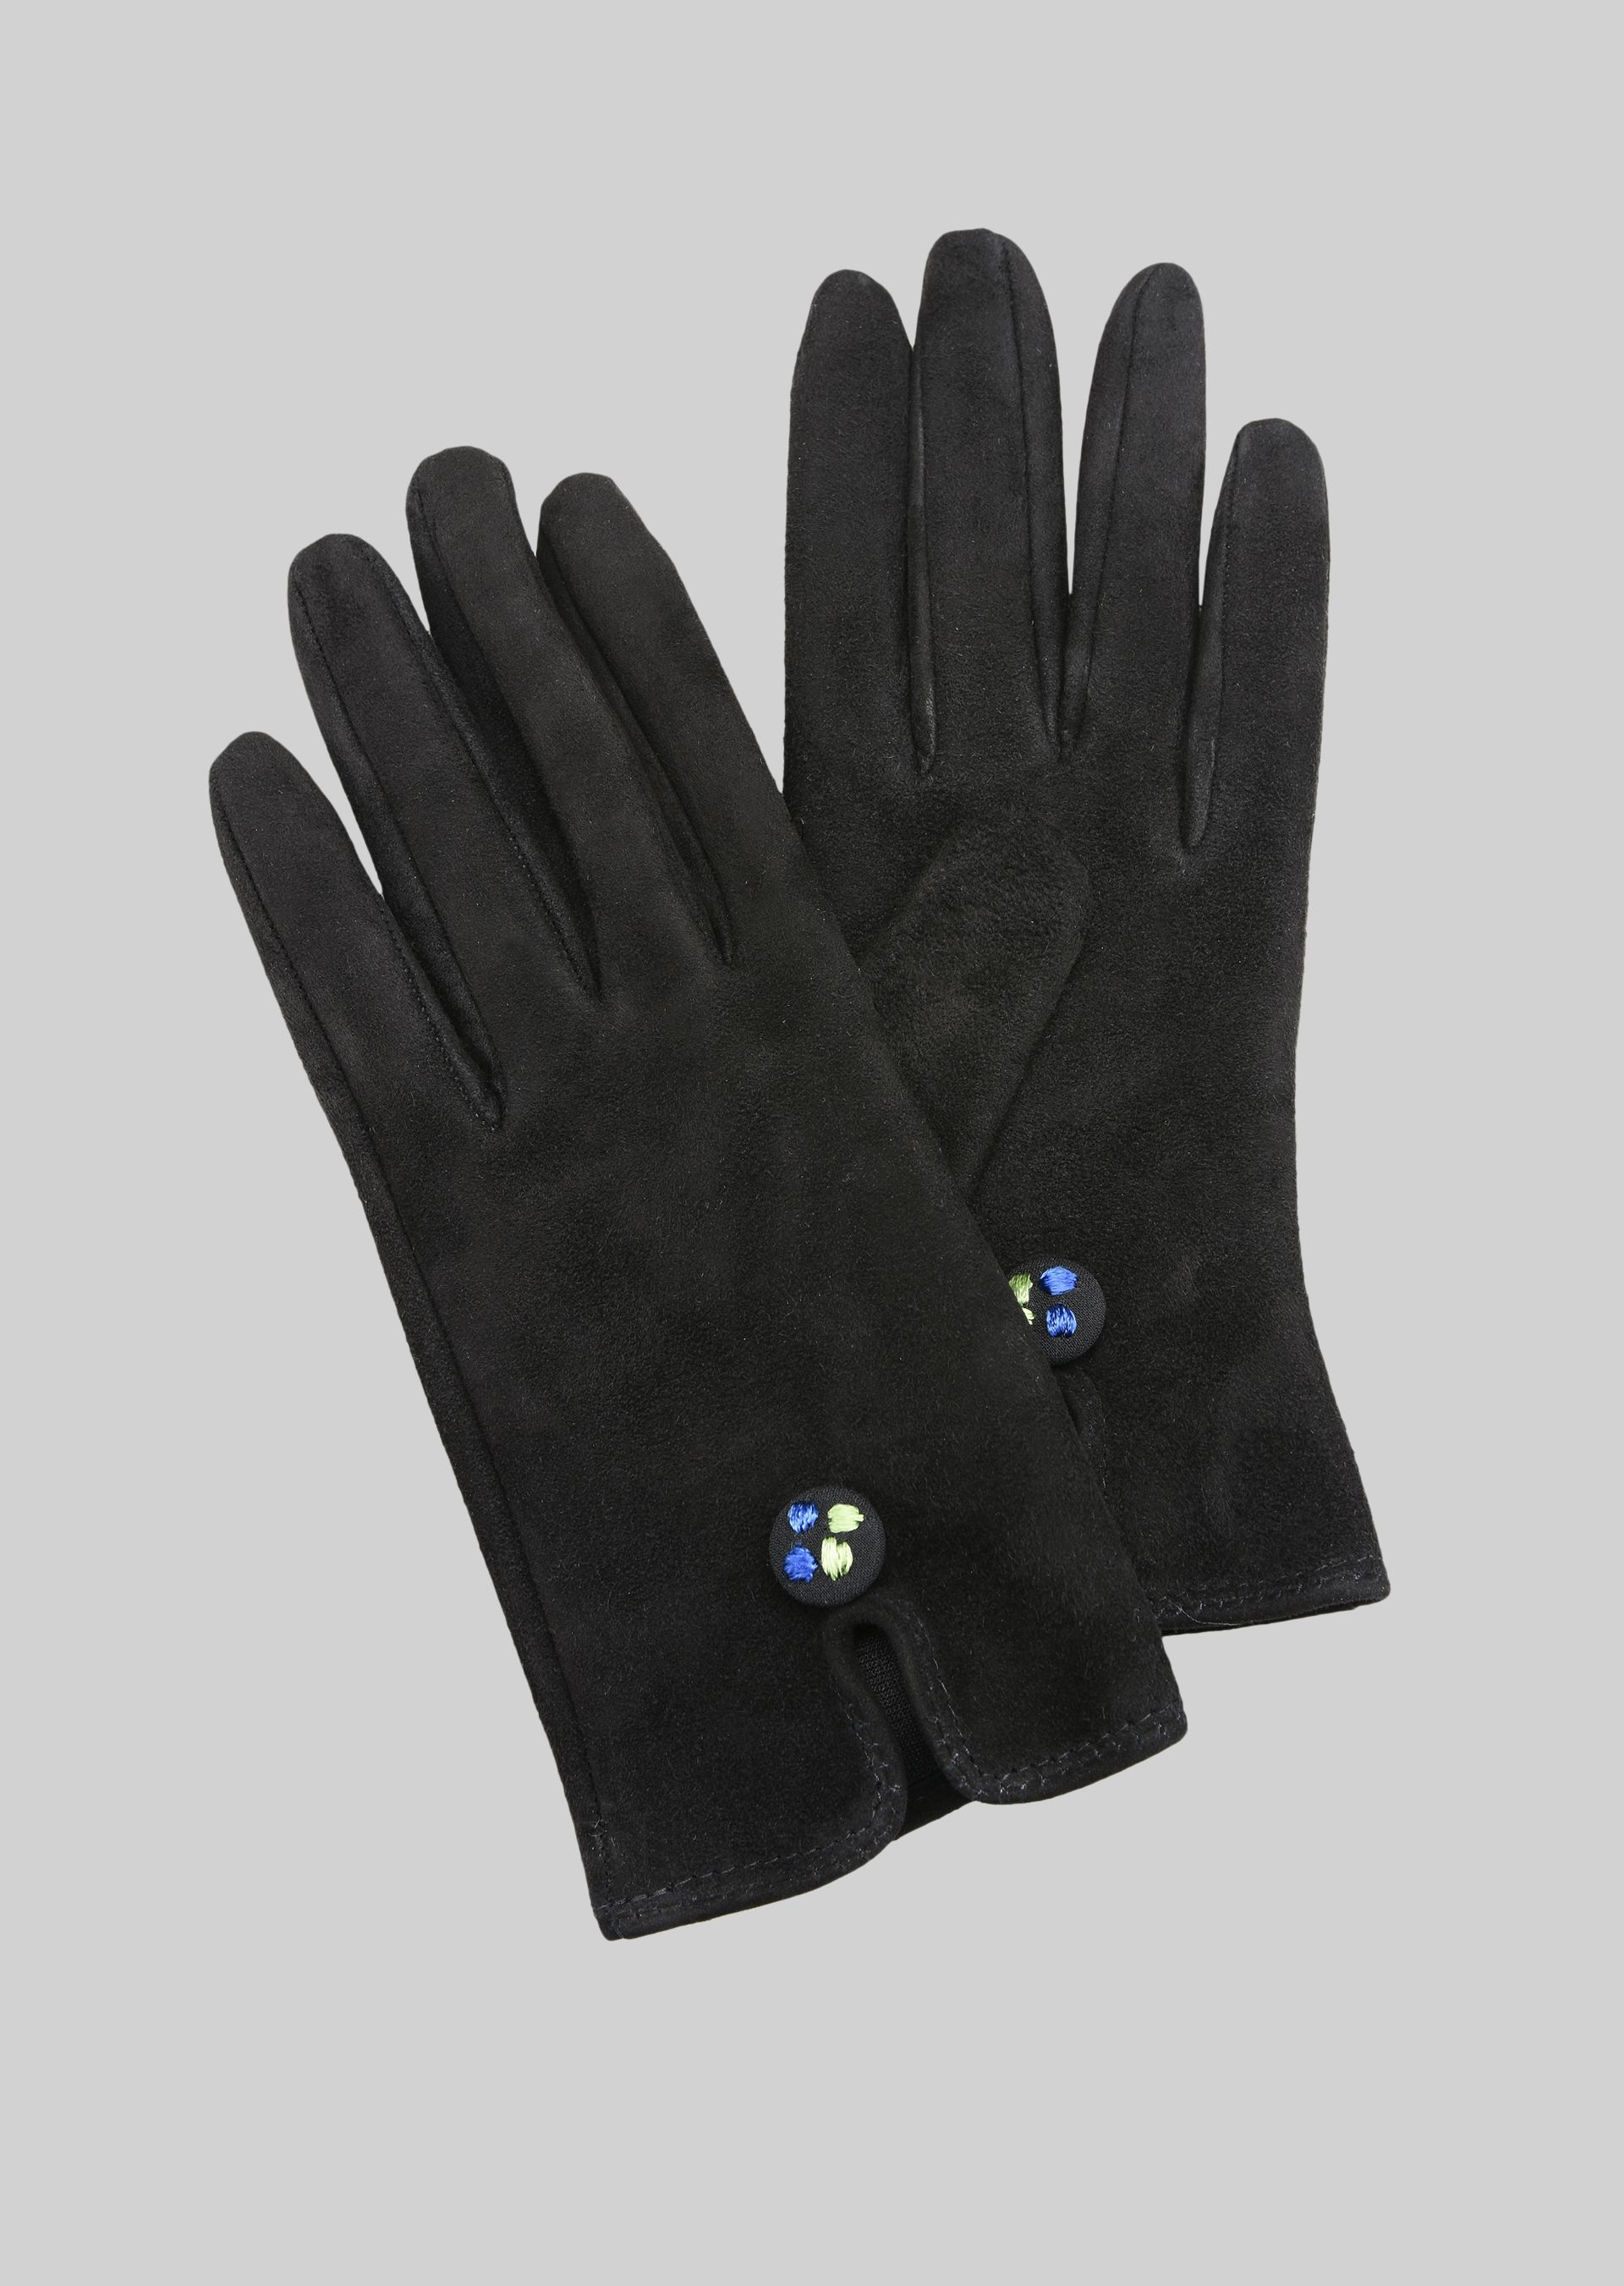 GIORGIO ARMANI LEATHER GLOVES WITH BUTTON Gloves D f